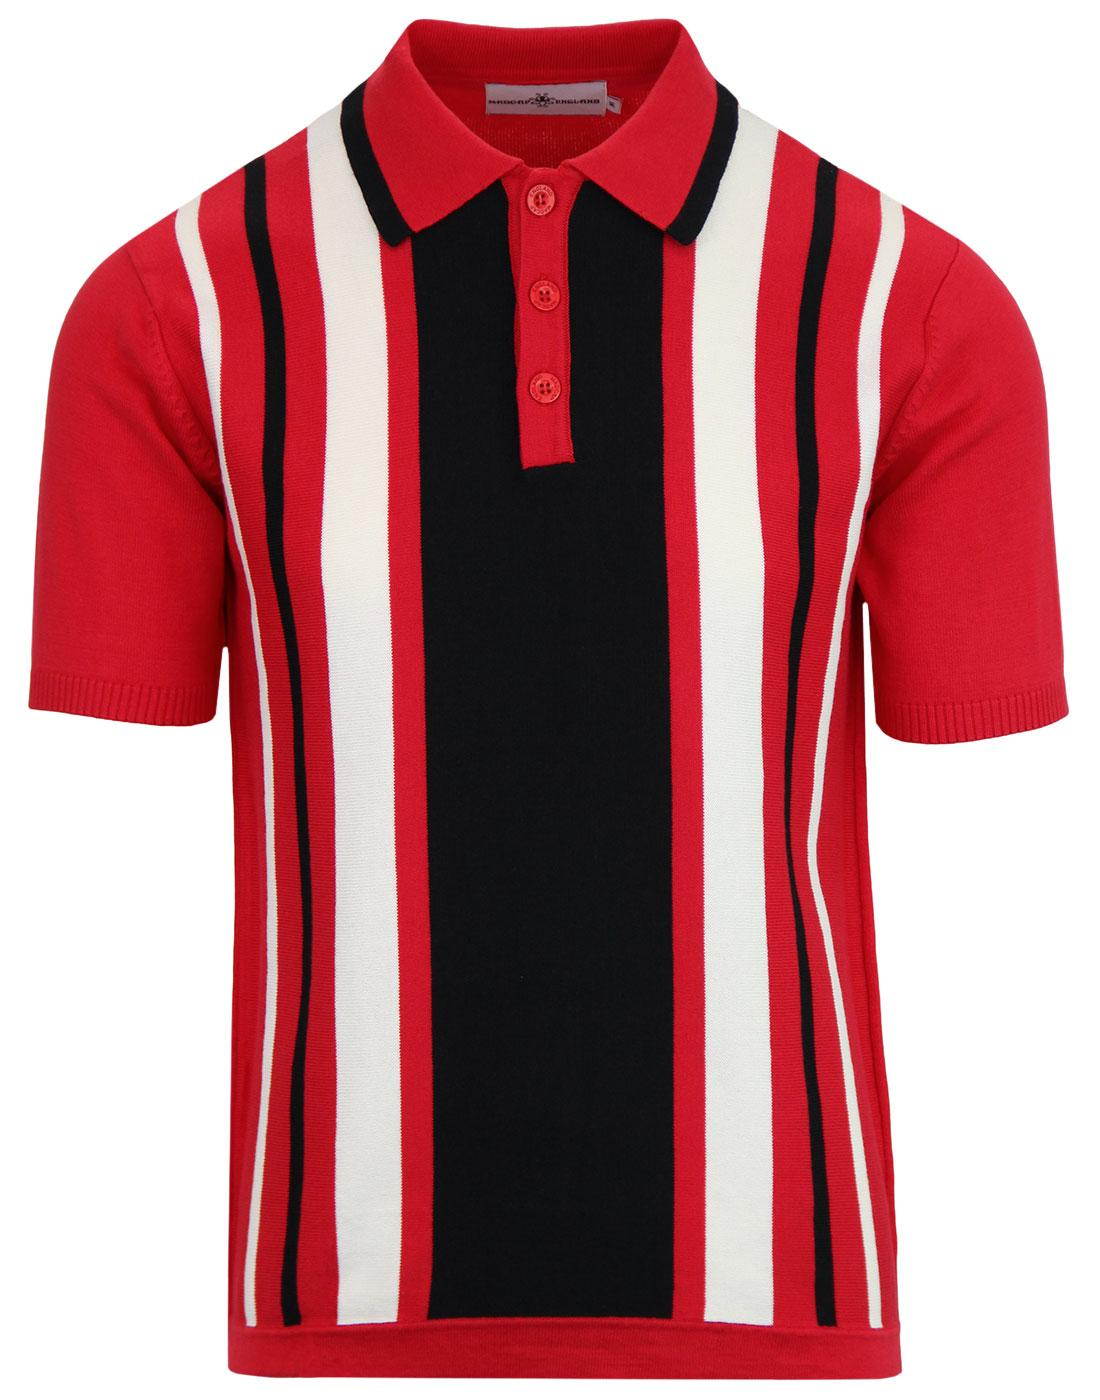 Folklore MADCAP ENGLAND Mod Stripe Knit Polo RED